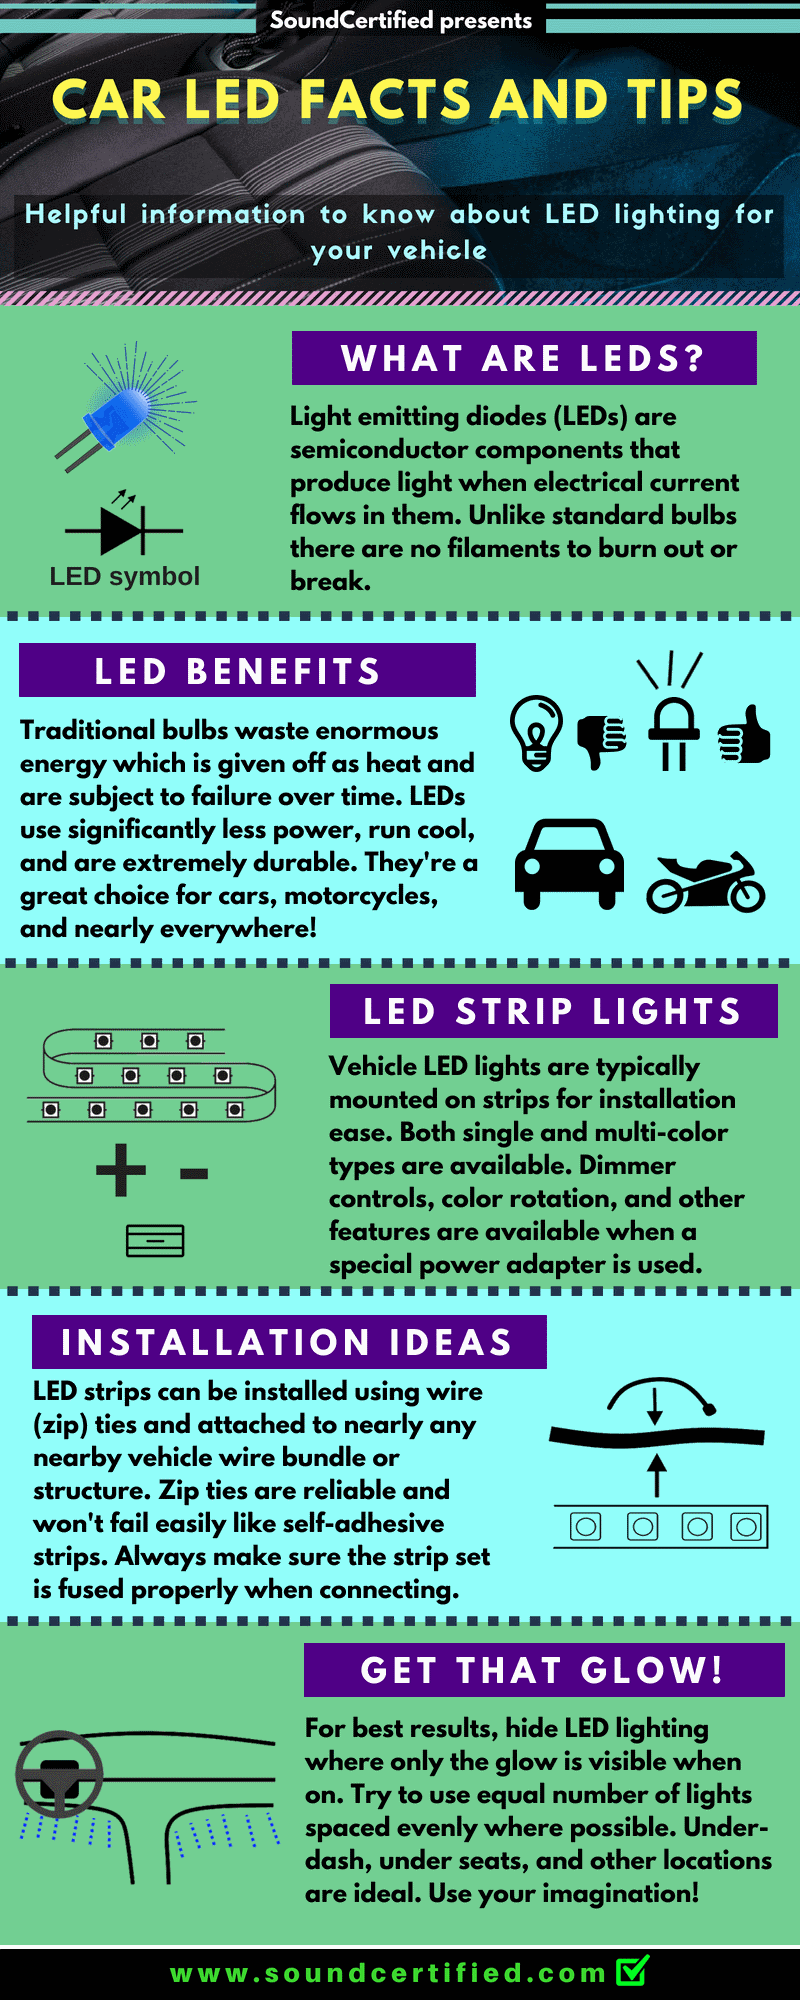 Car LED facts and tips infographic